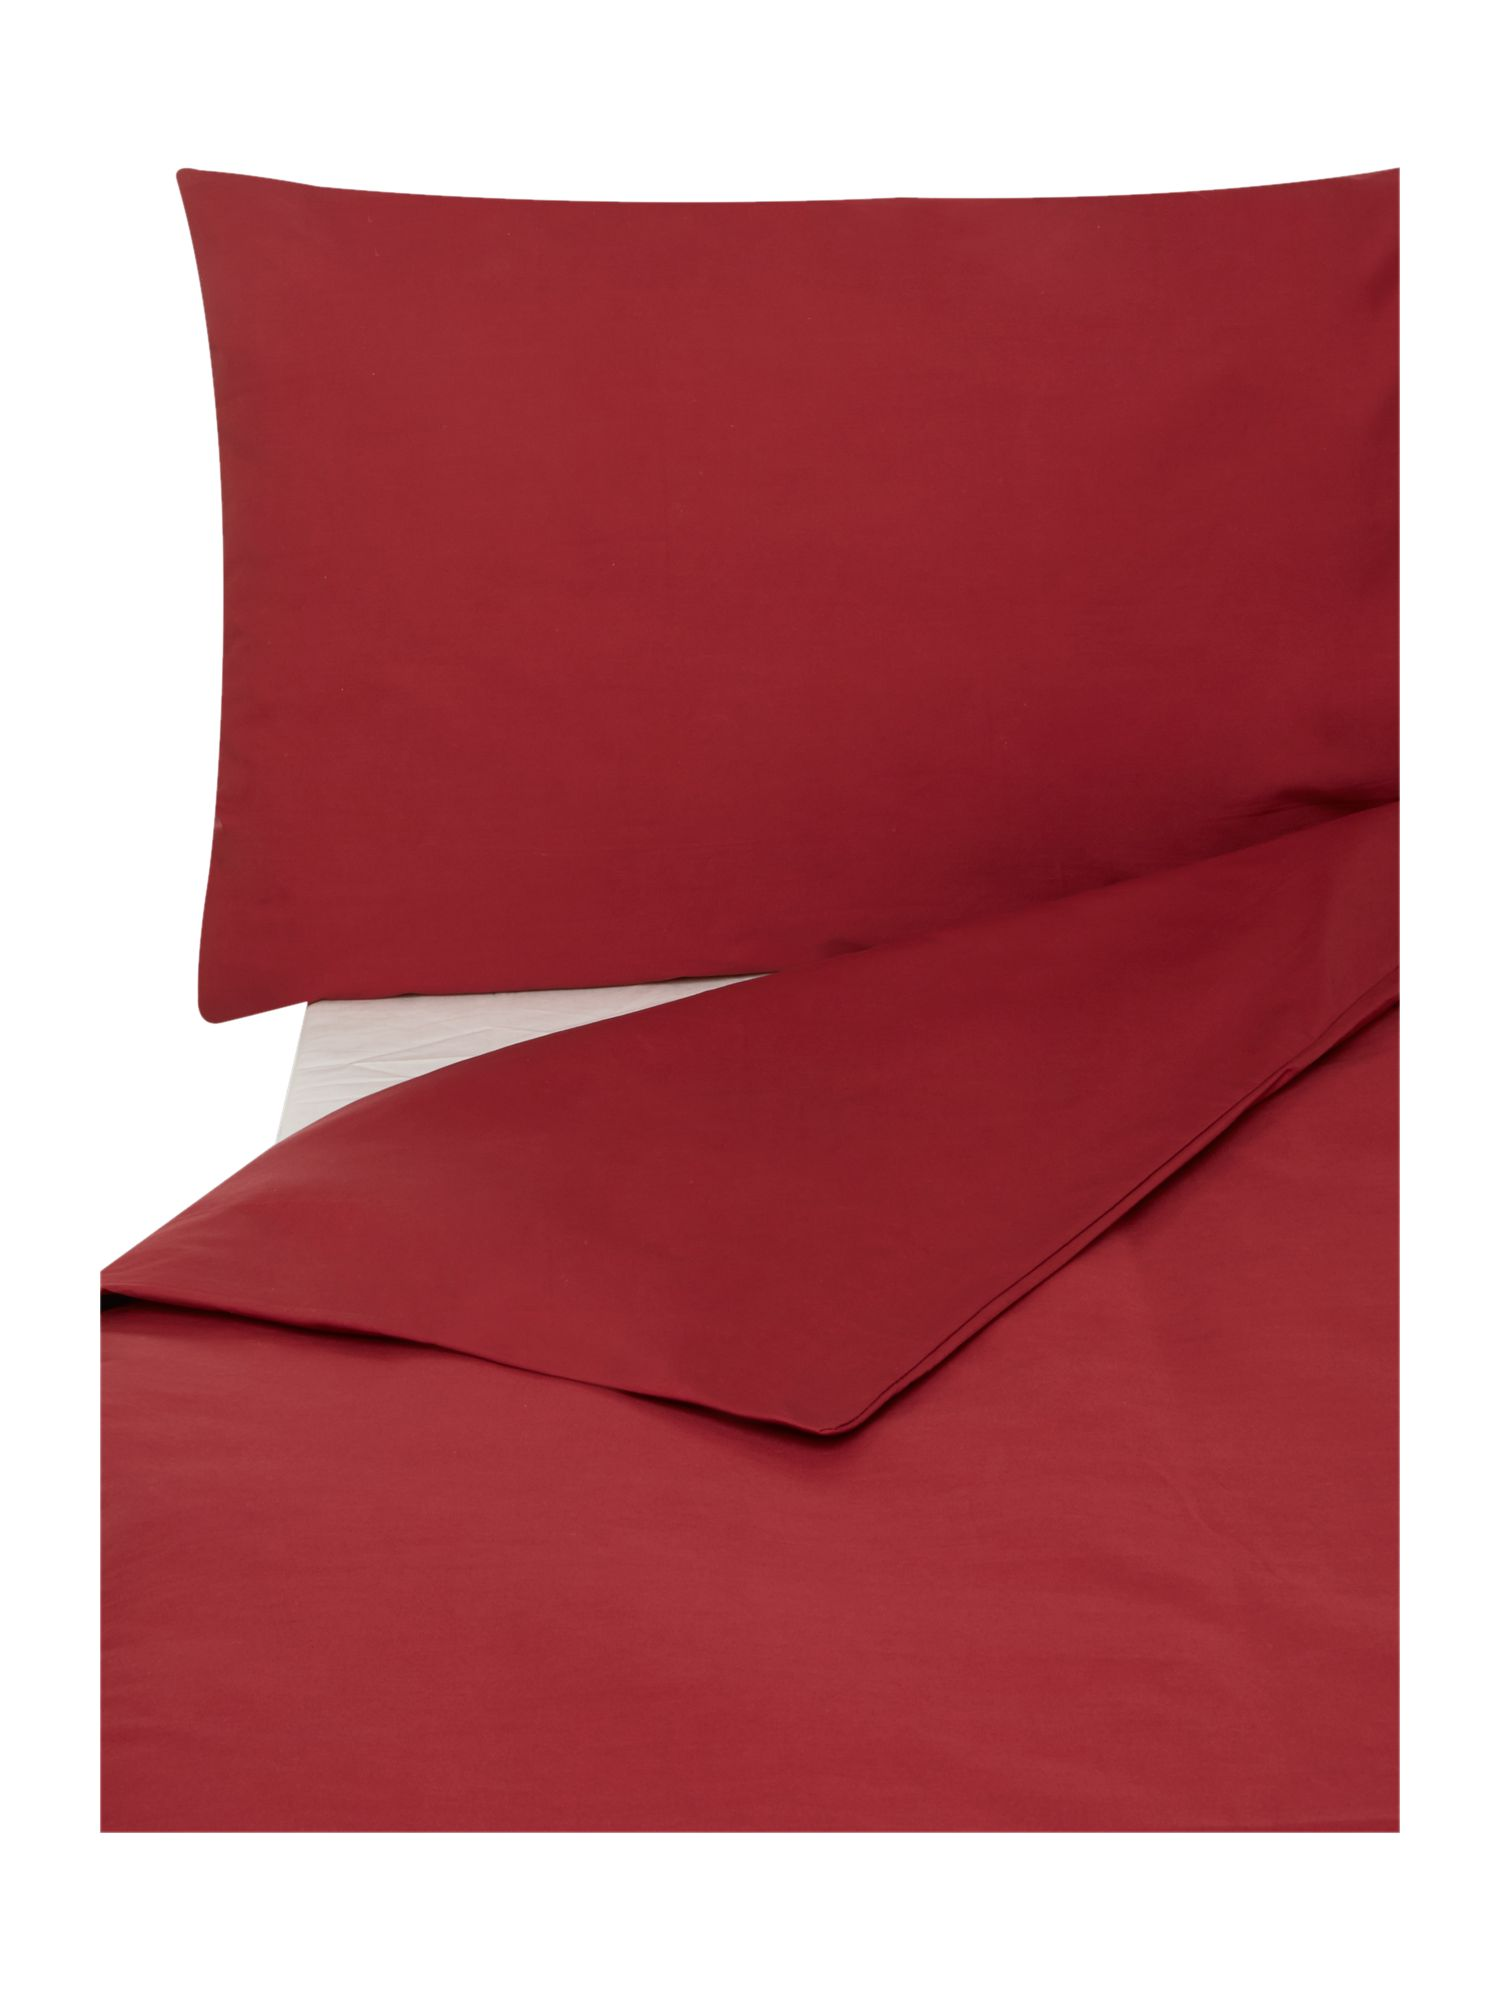 Egyptian cotton bedding range in red